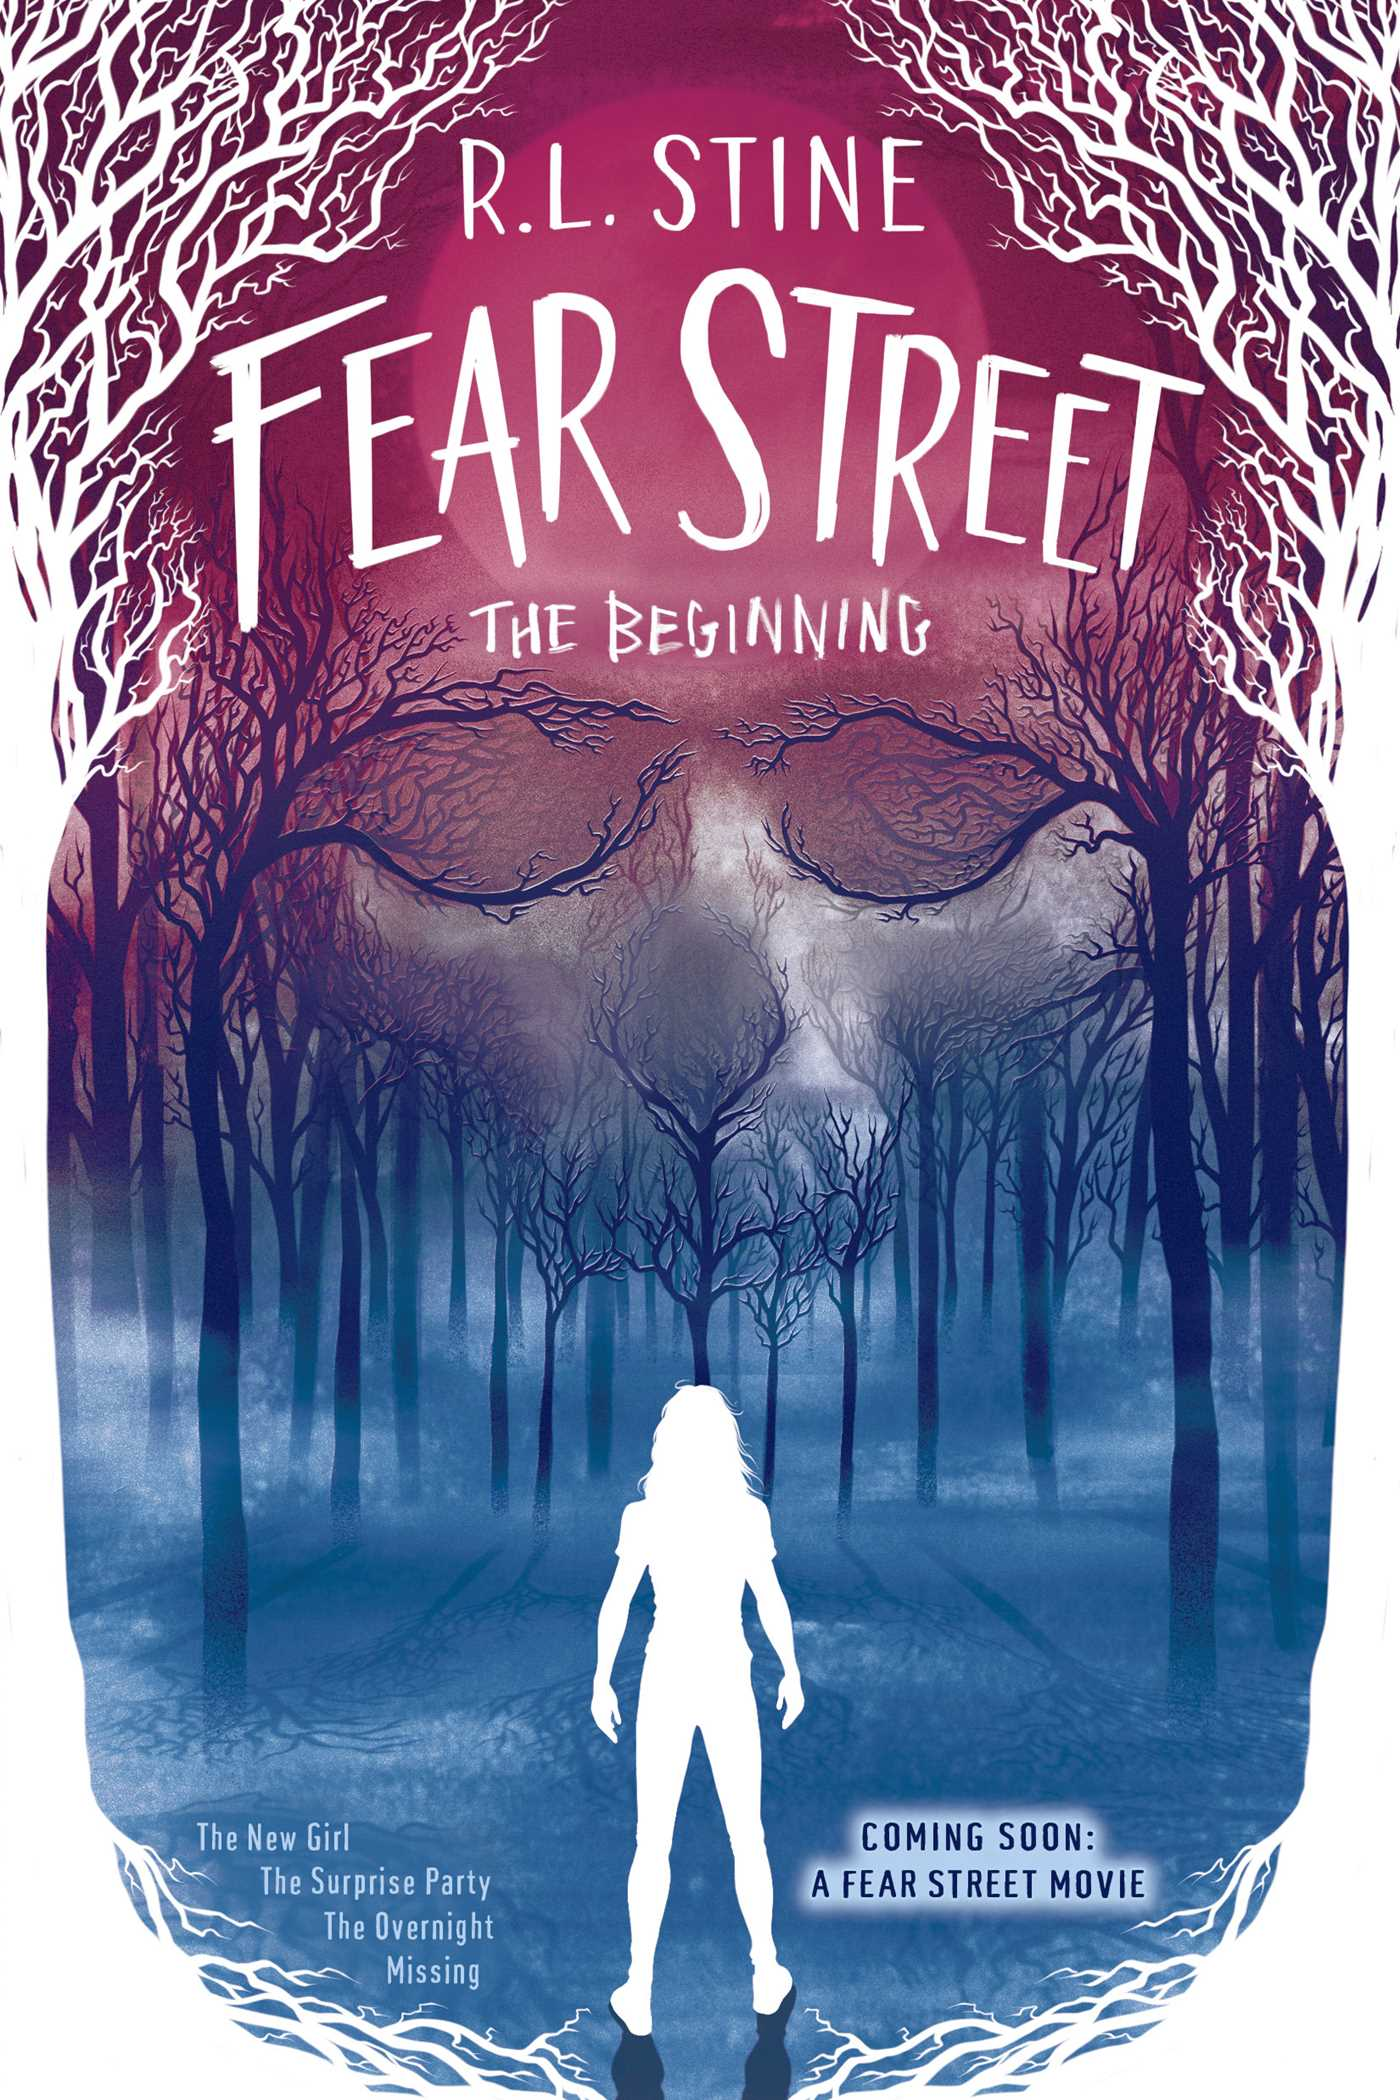 Fear Street The Beginning: The New Girl; The Surprise Party; The Overnight; Missing by R.L. Stine